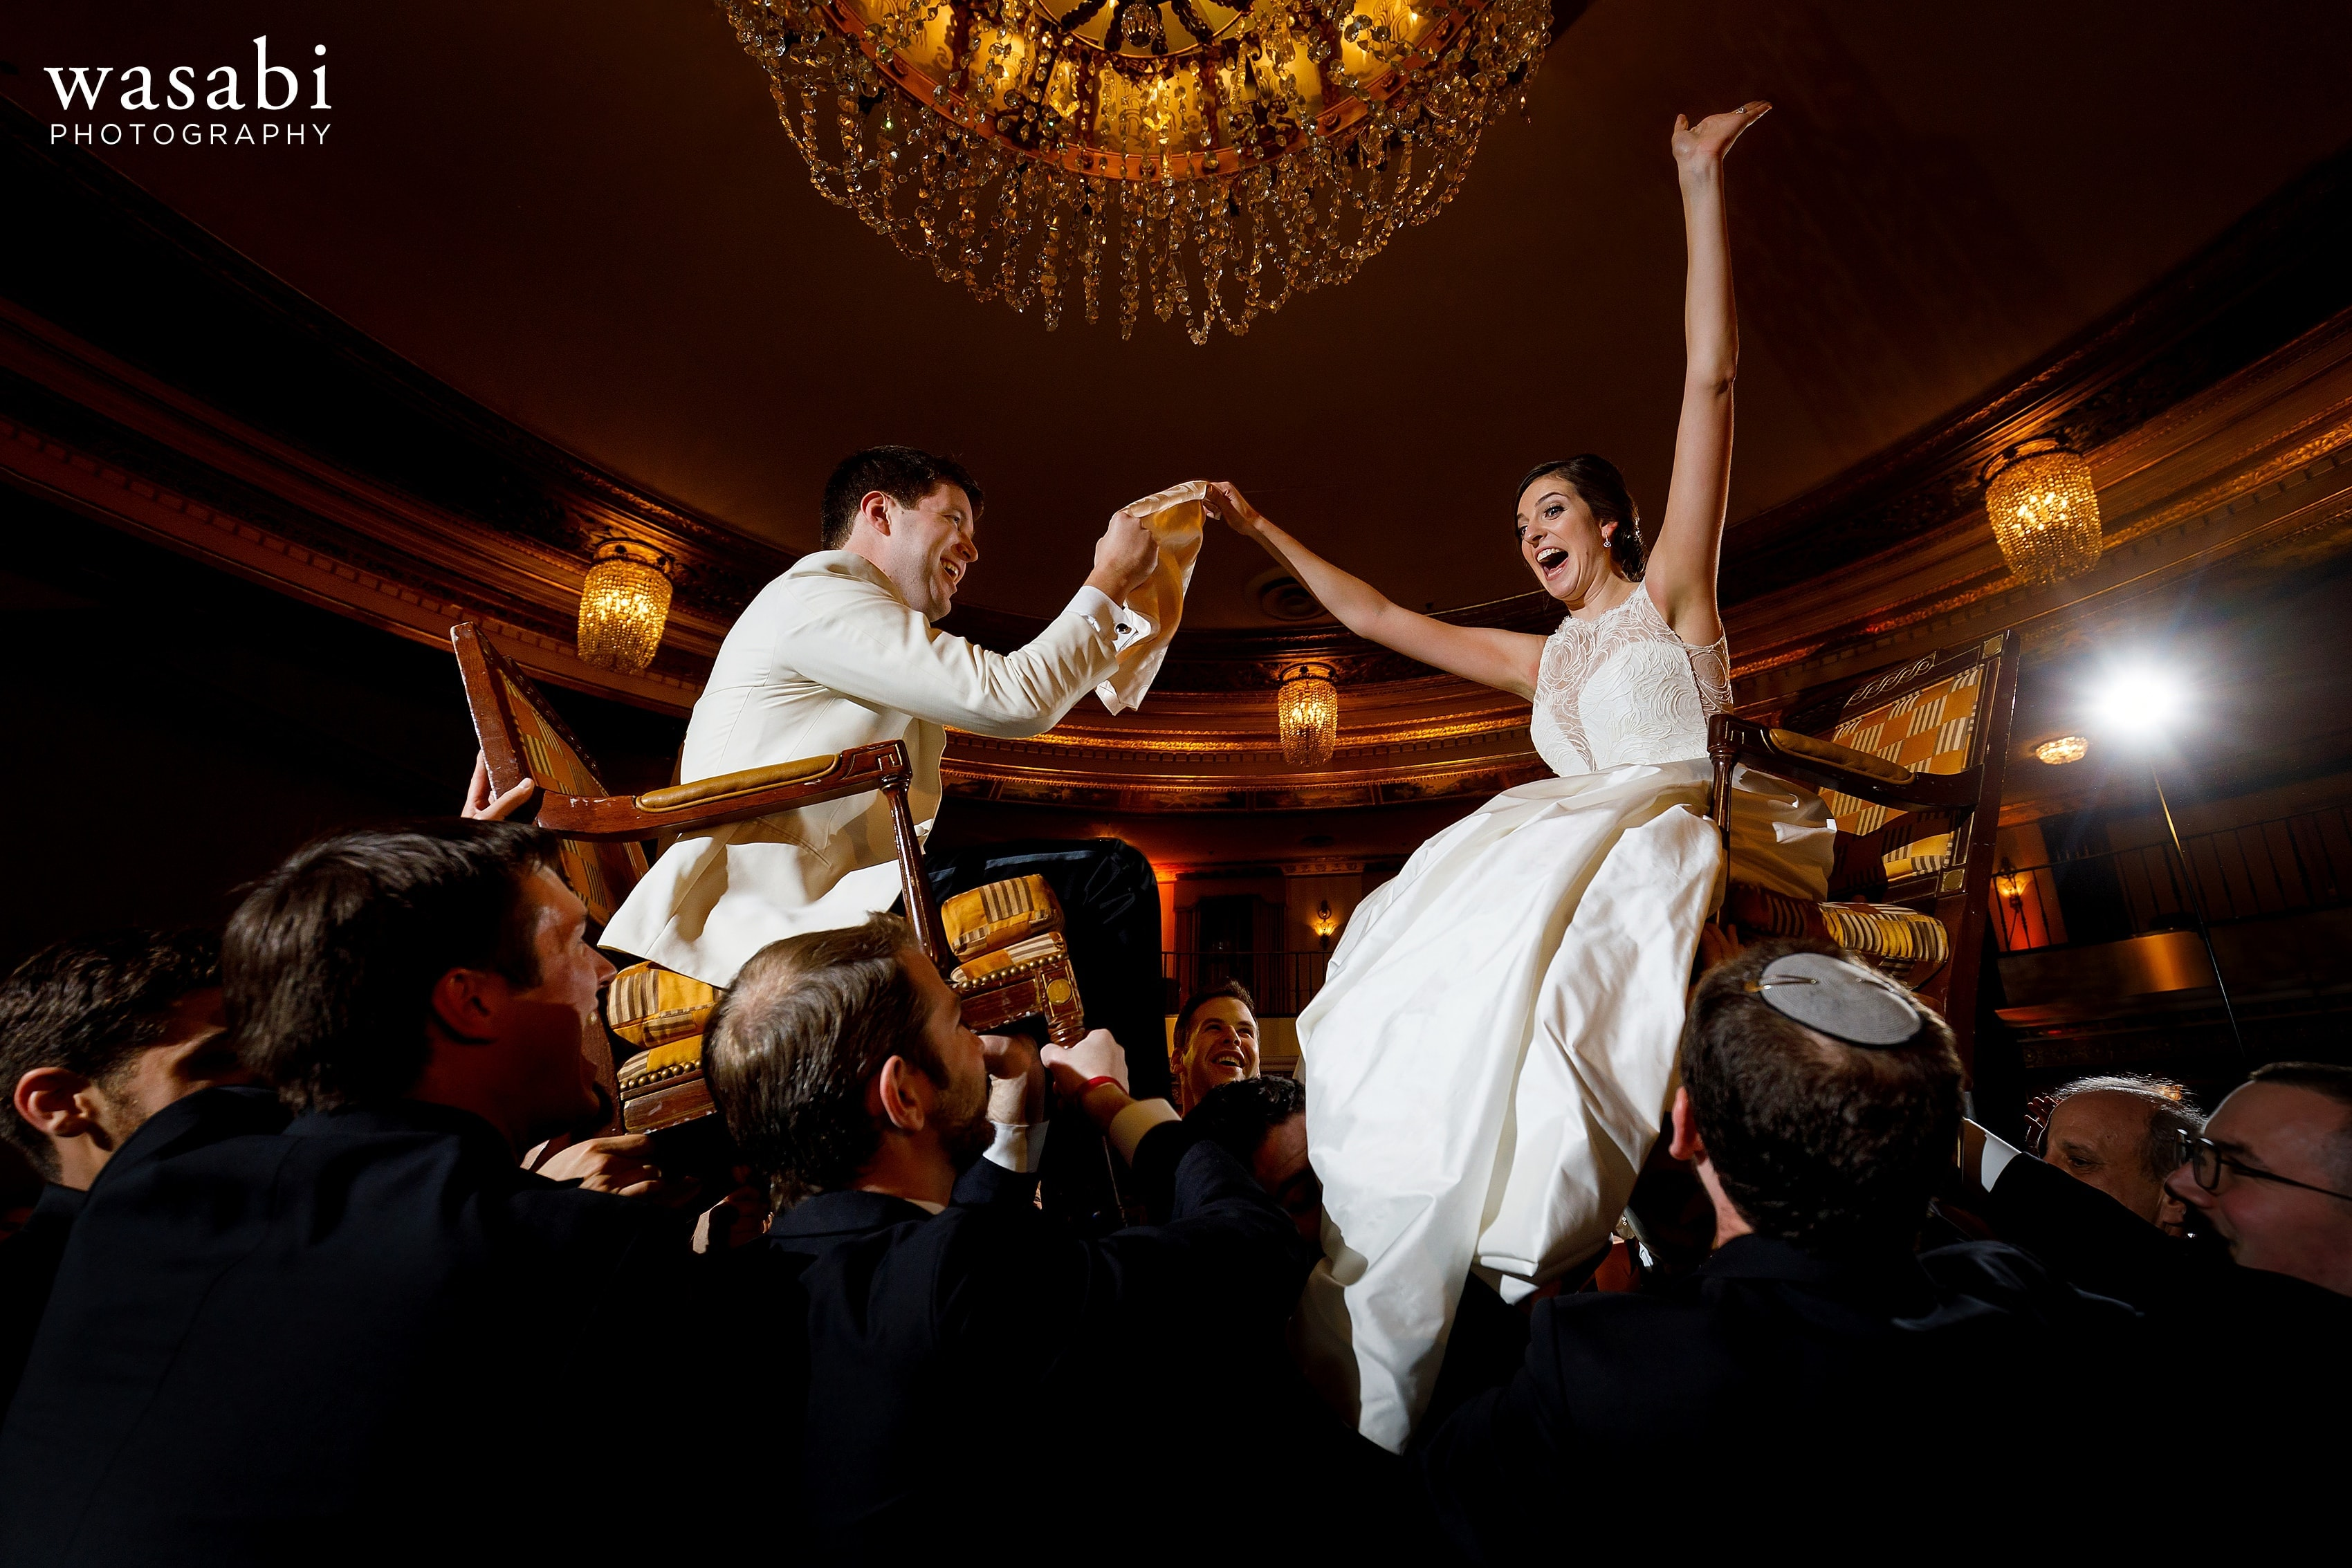 bride and groom are lifted onto chairs during the Horah during Jewish wedding reception at InterContinental Chicago Magnificent Mile Hotel